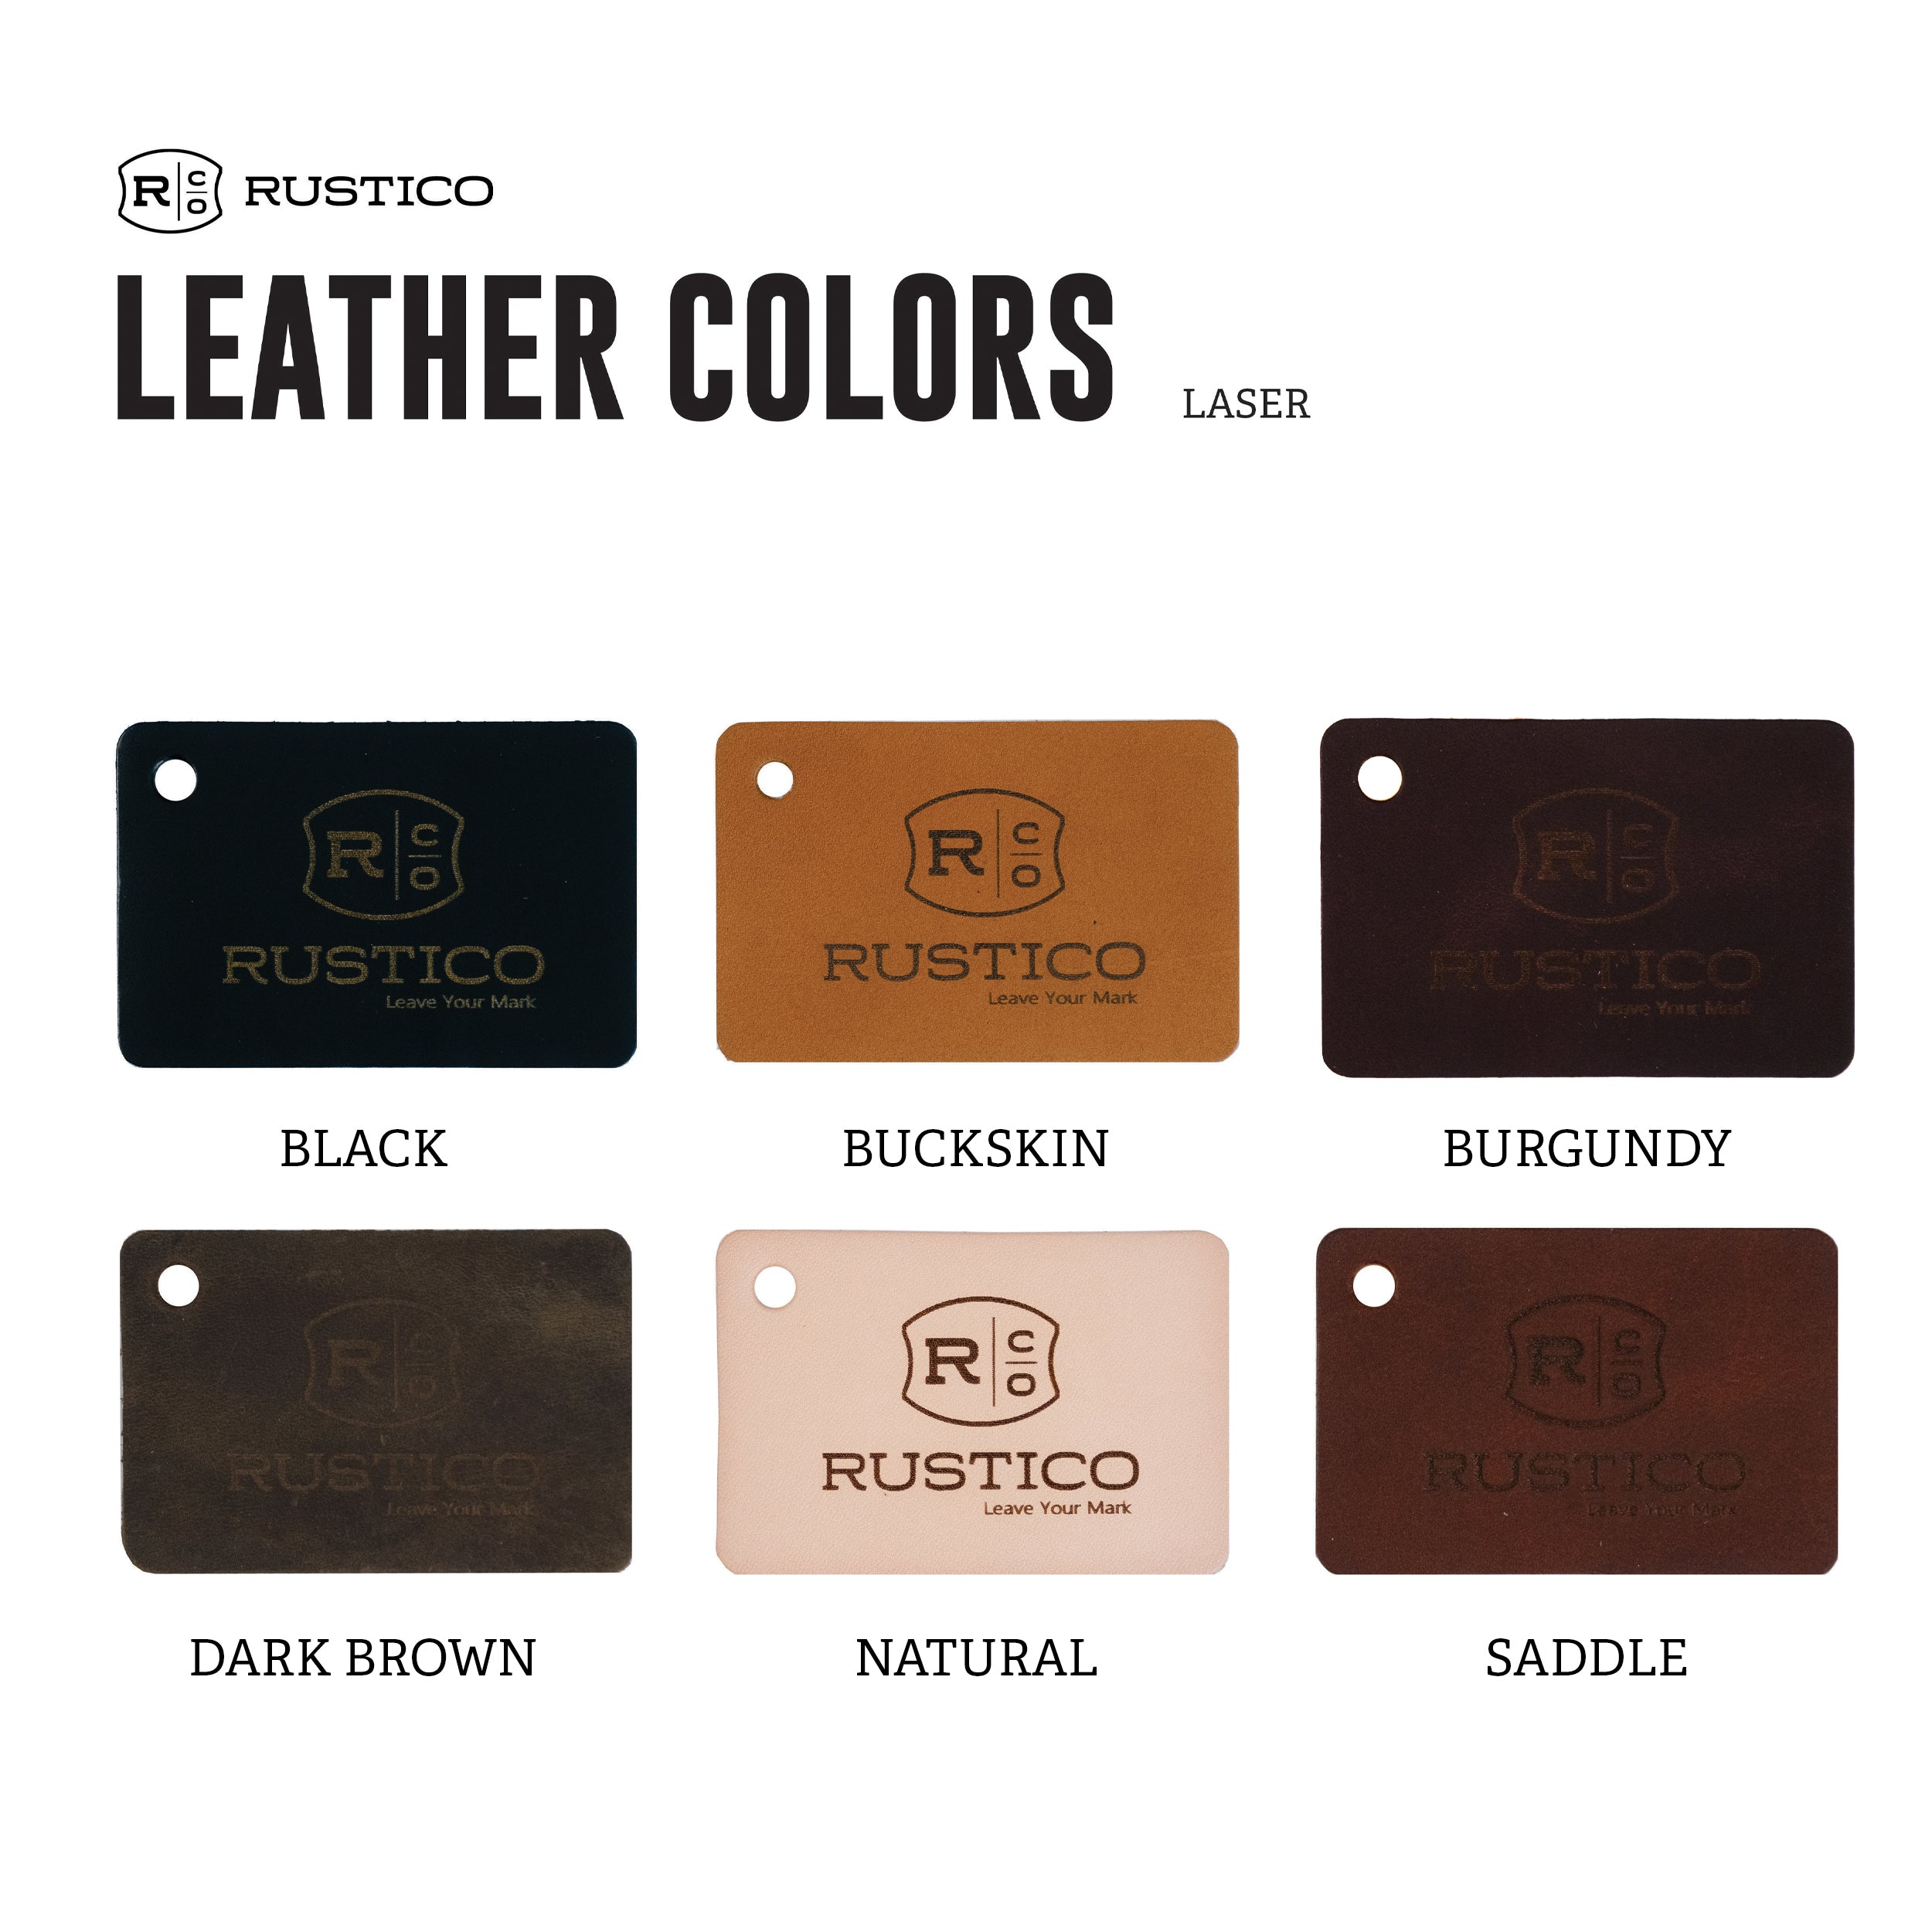 Rustico leather color swatches